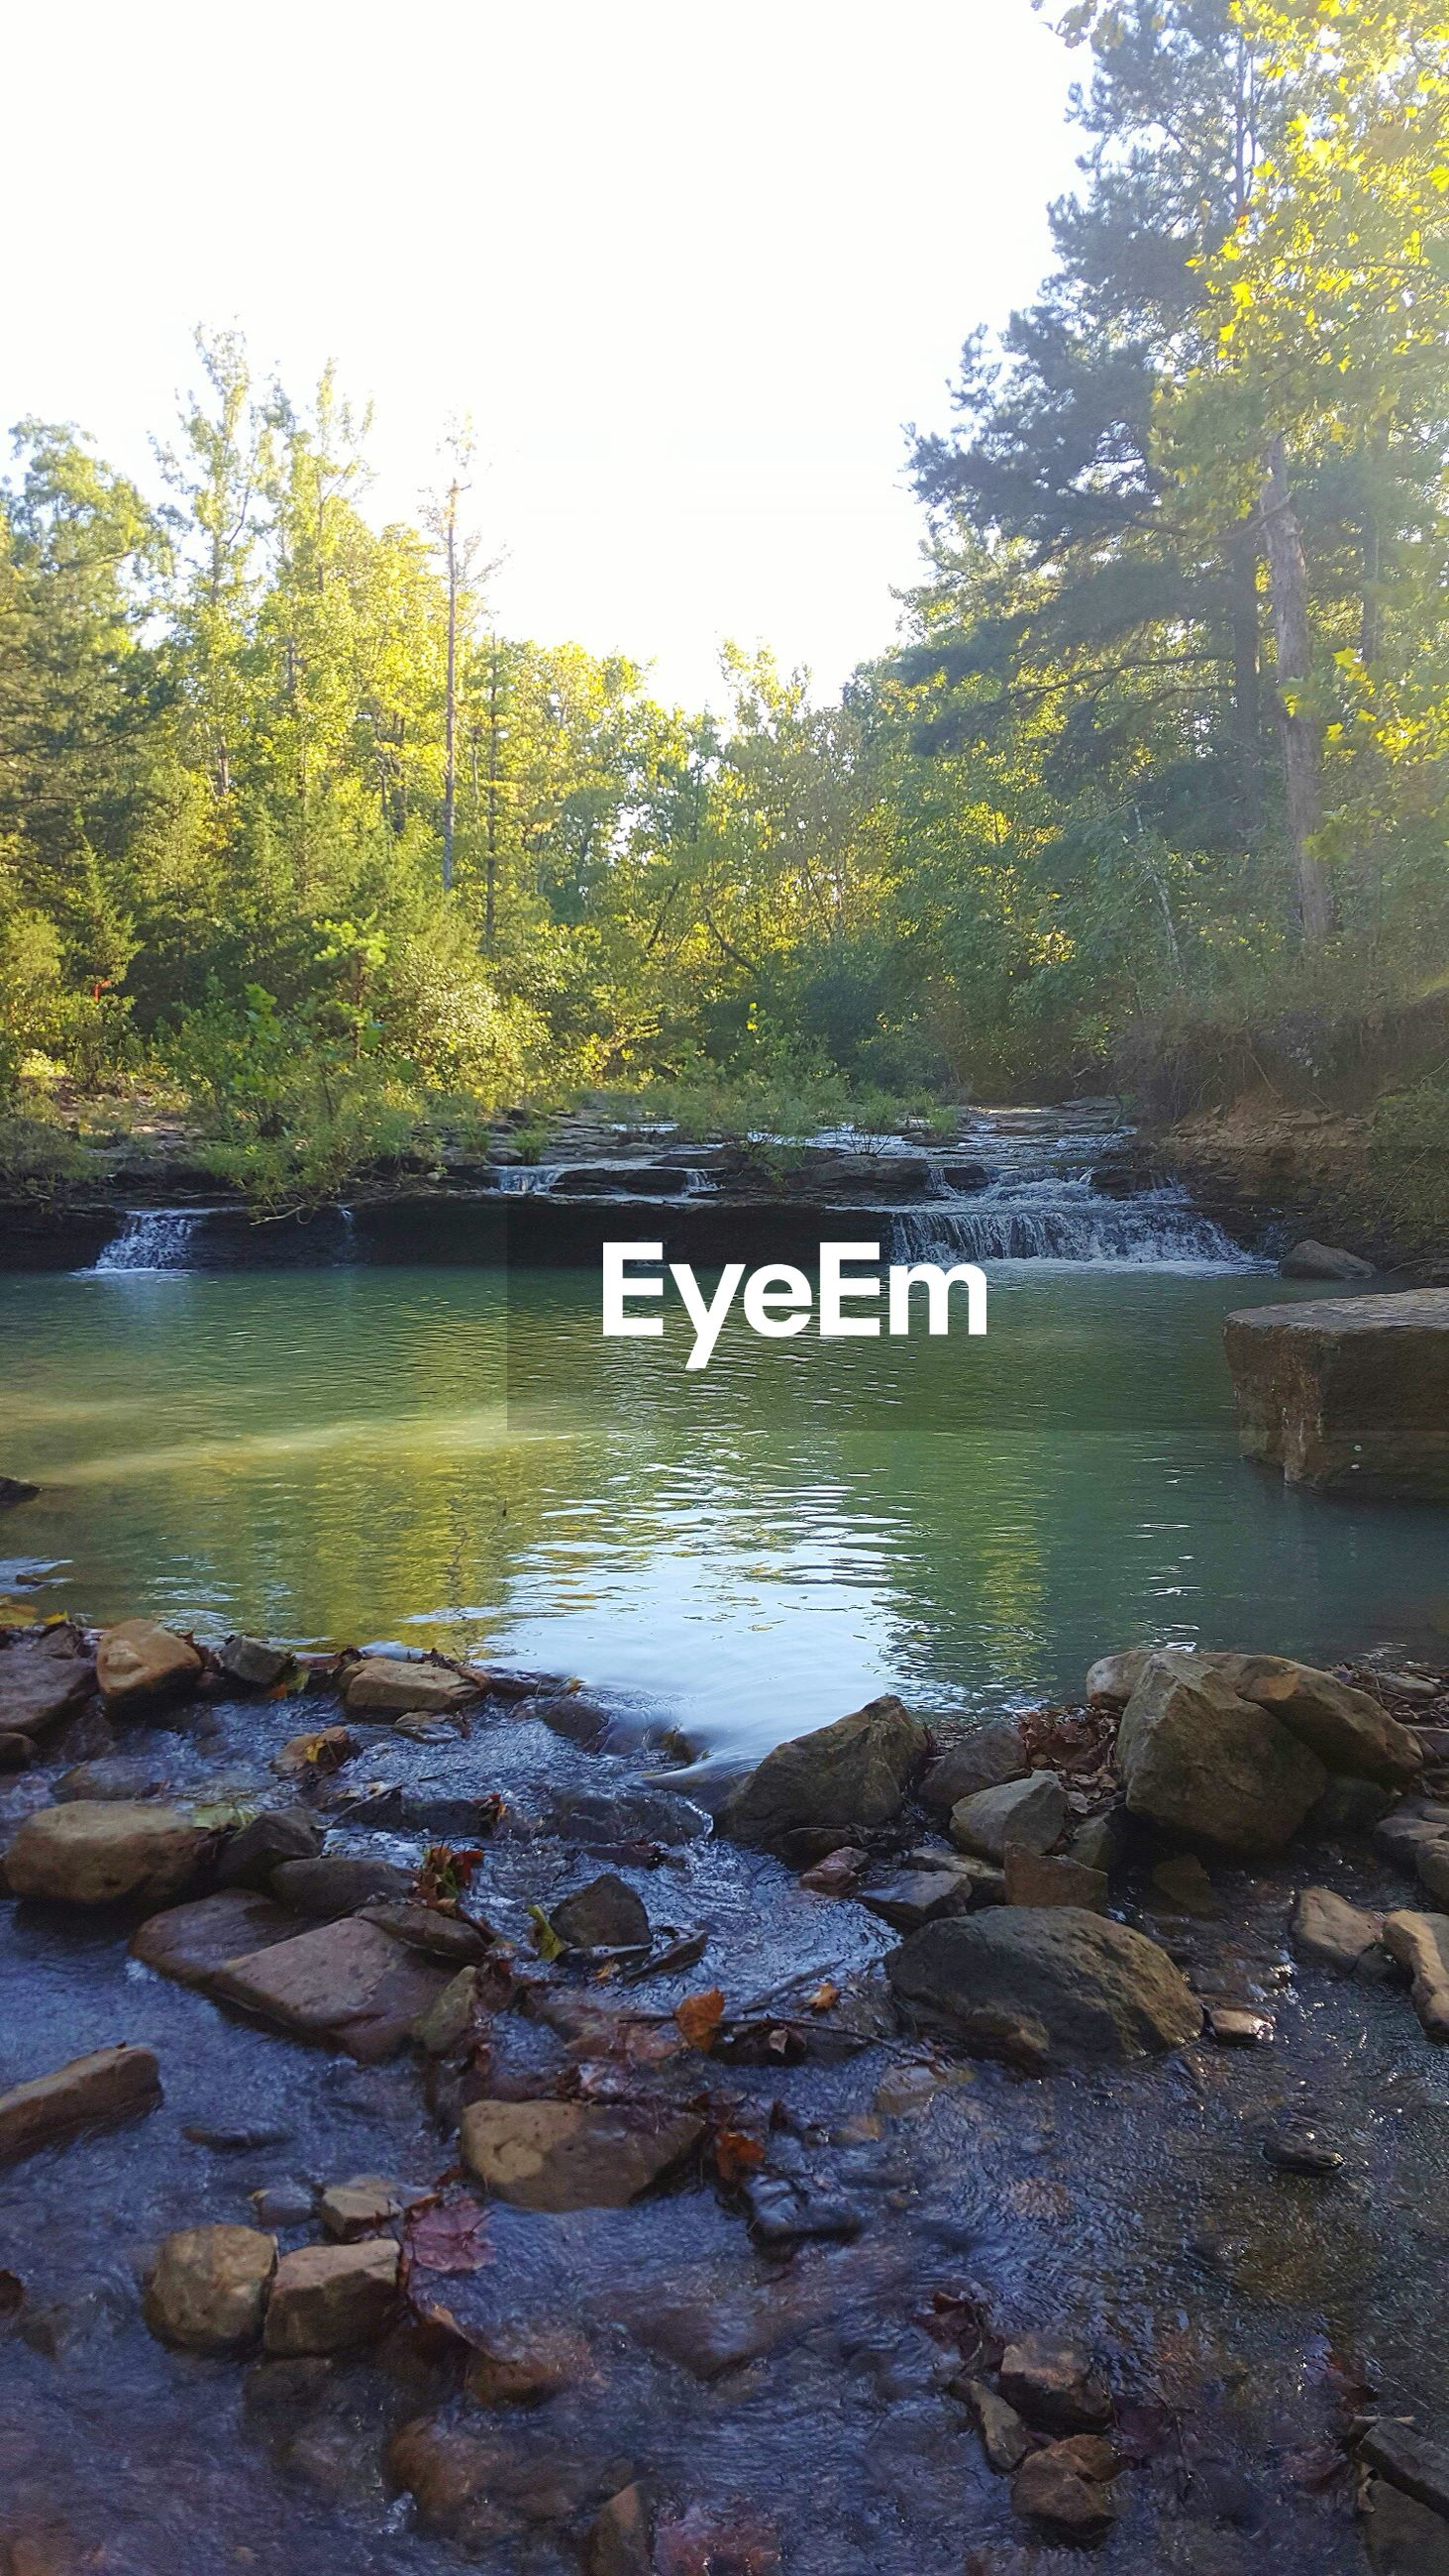 water, tree, tranquility, tranquil scene, scenics, lake, beauty in nature, nature, reflection, river, forest, rock - object, clear sky, growth, day, non-urban scene, idyllic, stream, outdoors, waterfront